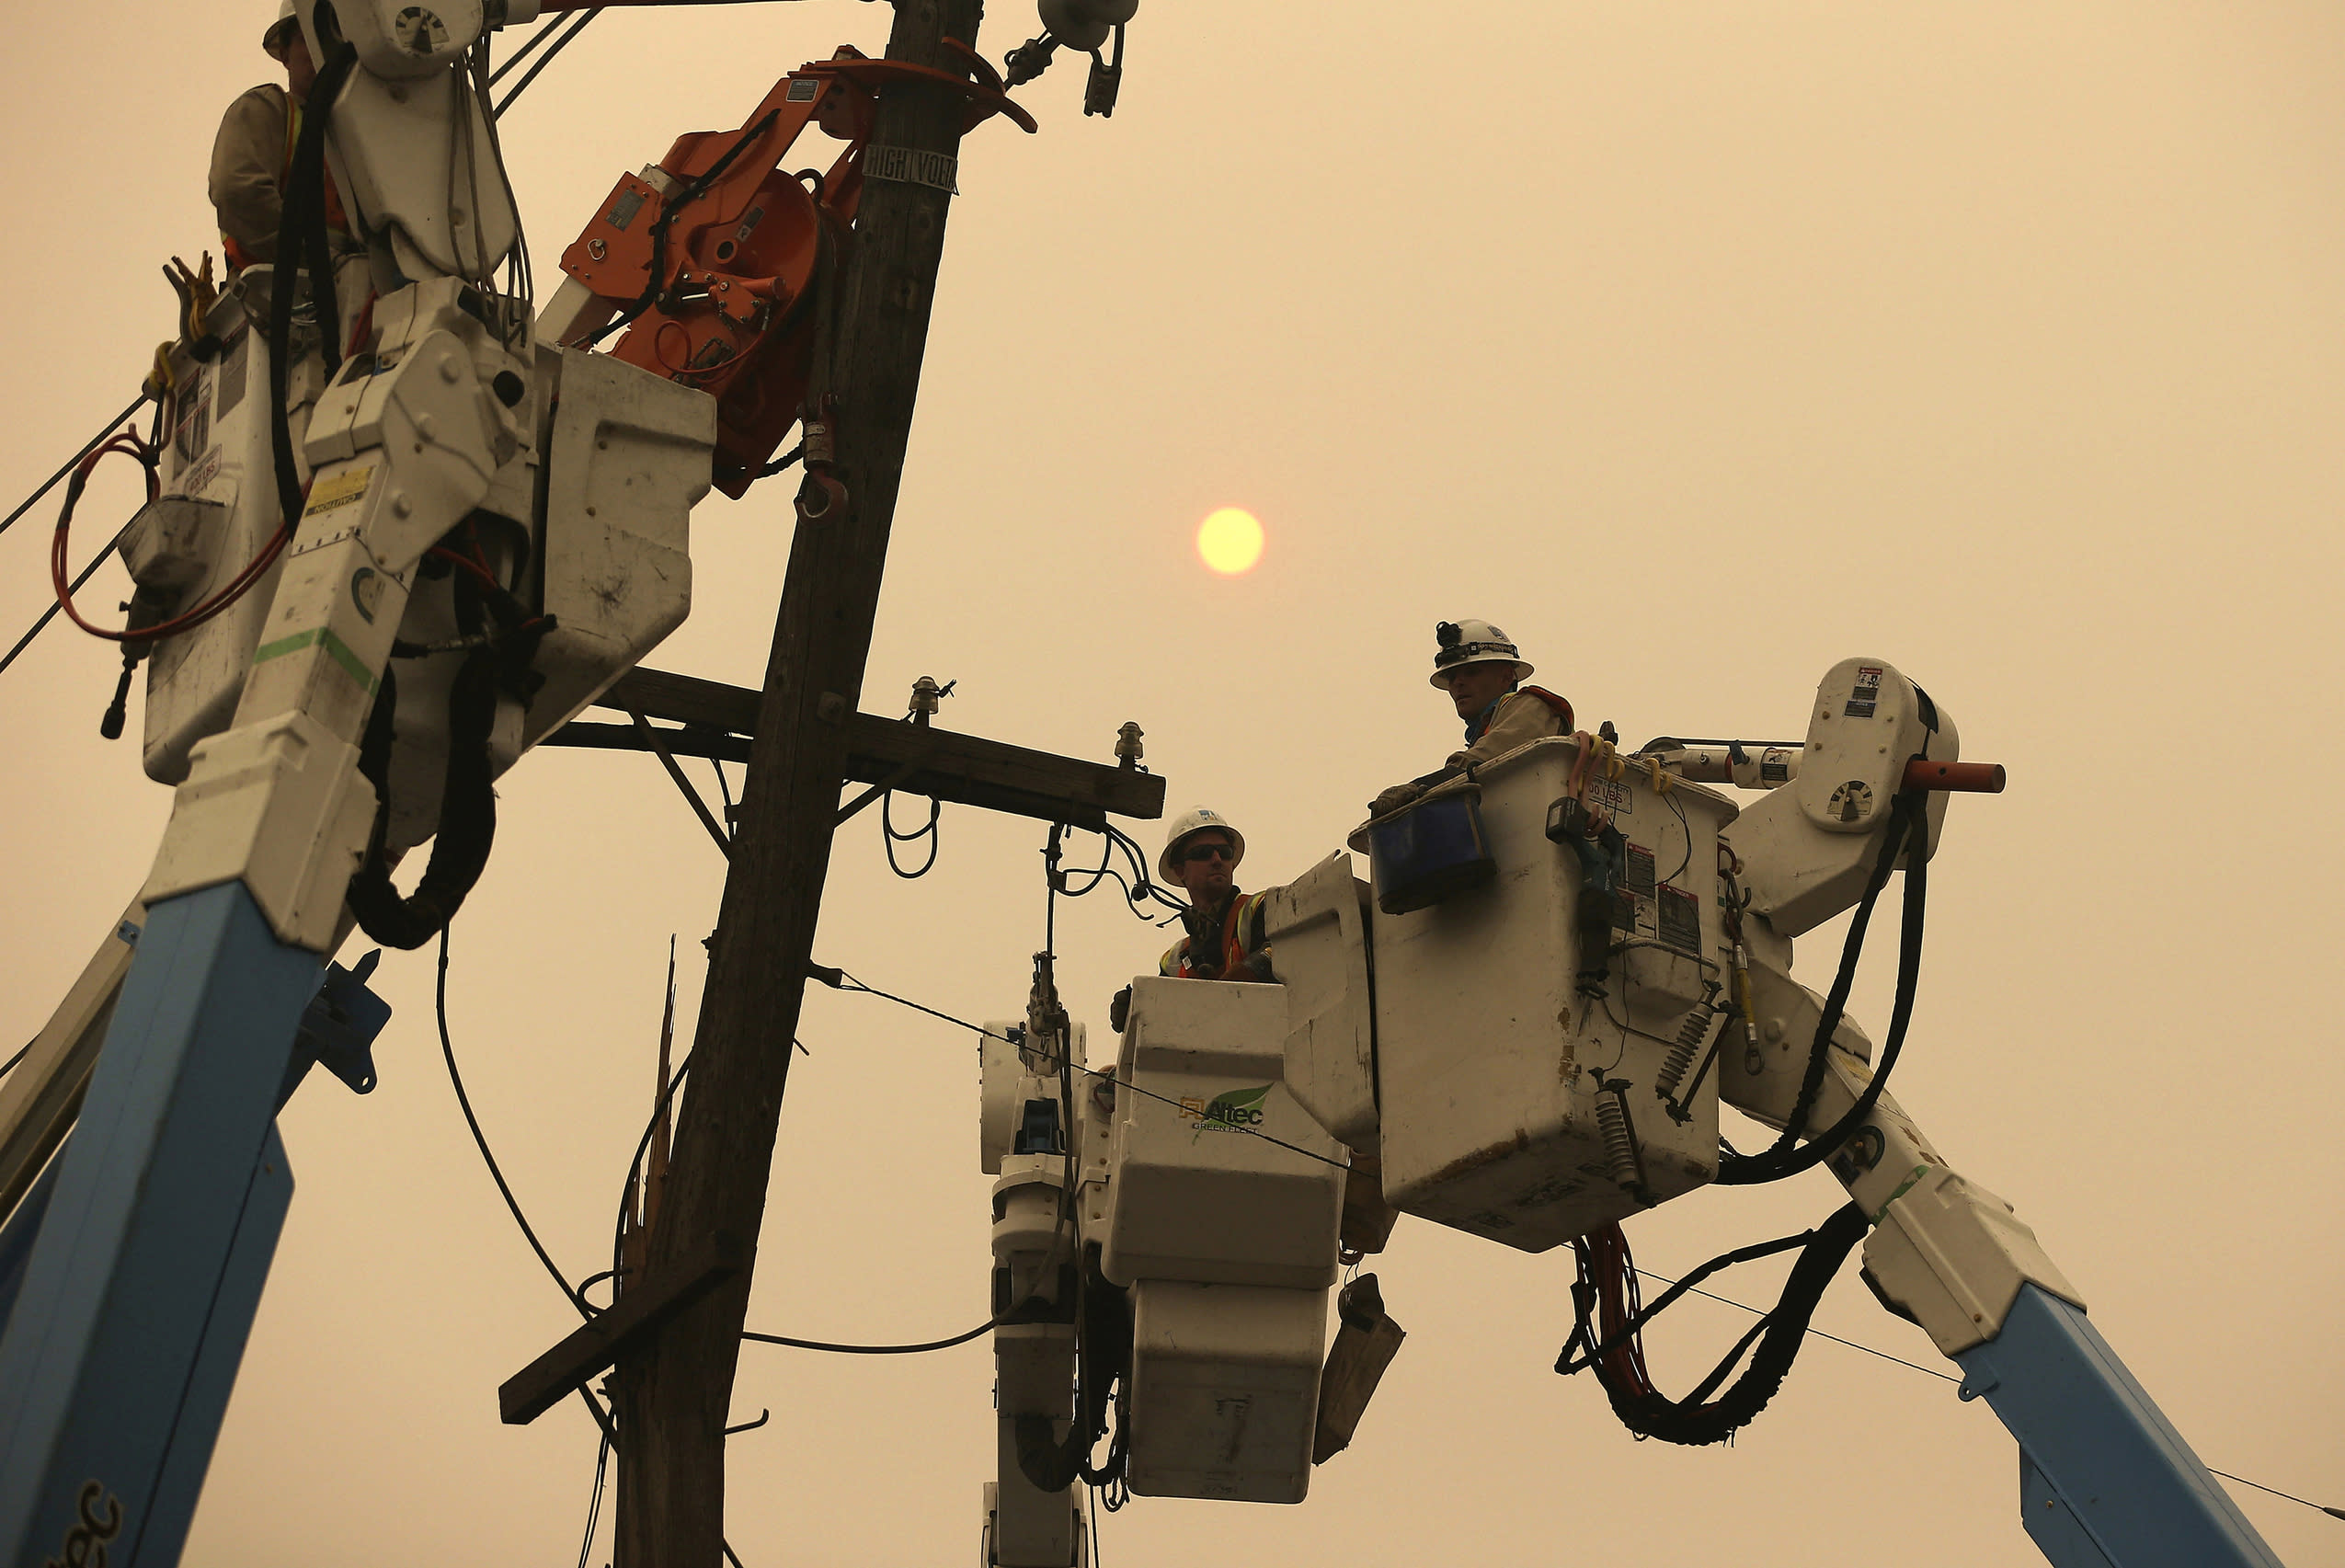 California power company admits equipment may have sparked wildfire